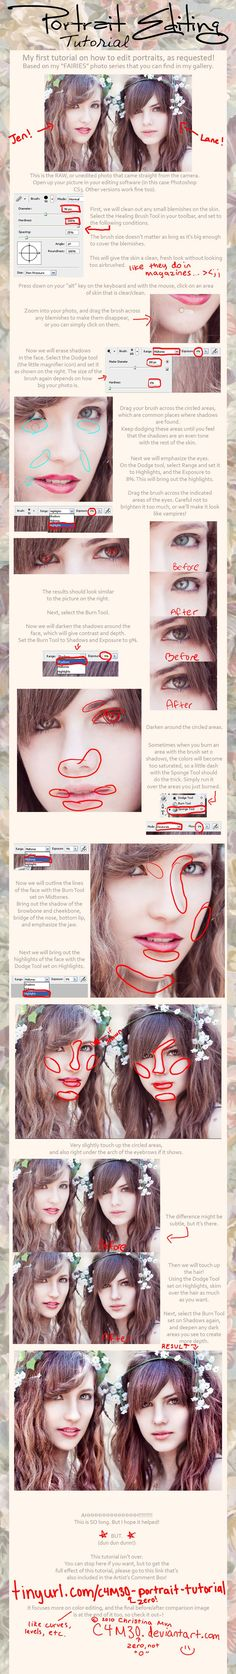 cute blemish / dodge / burn photoshop Tutorial